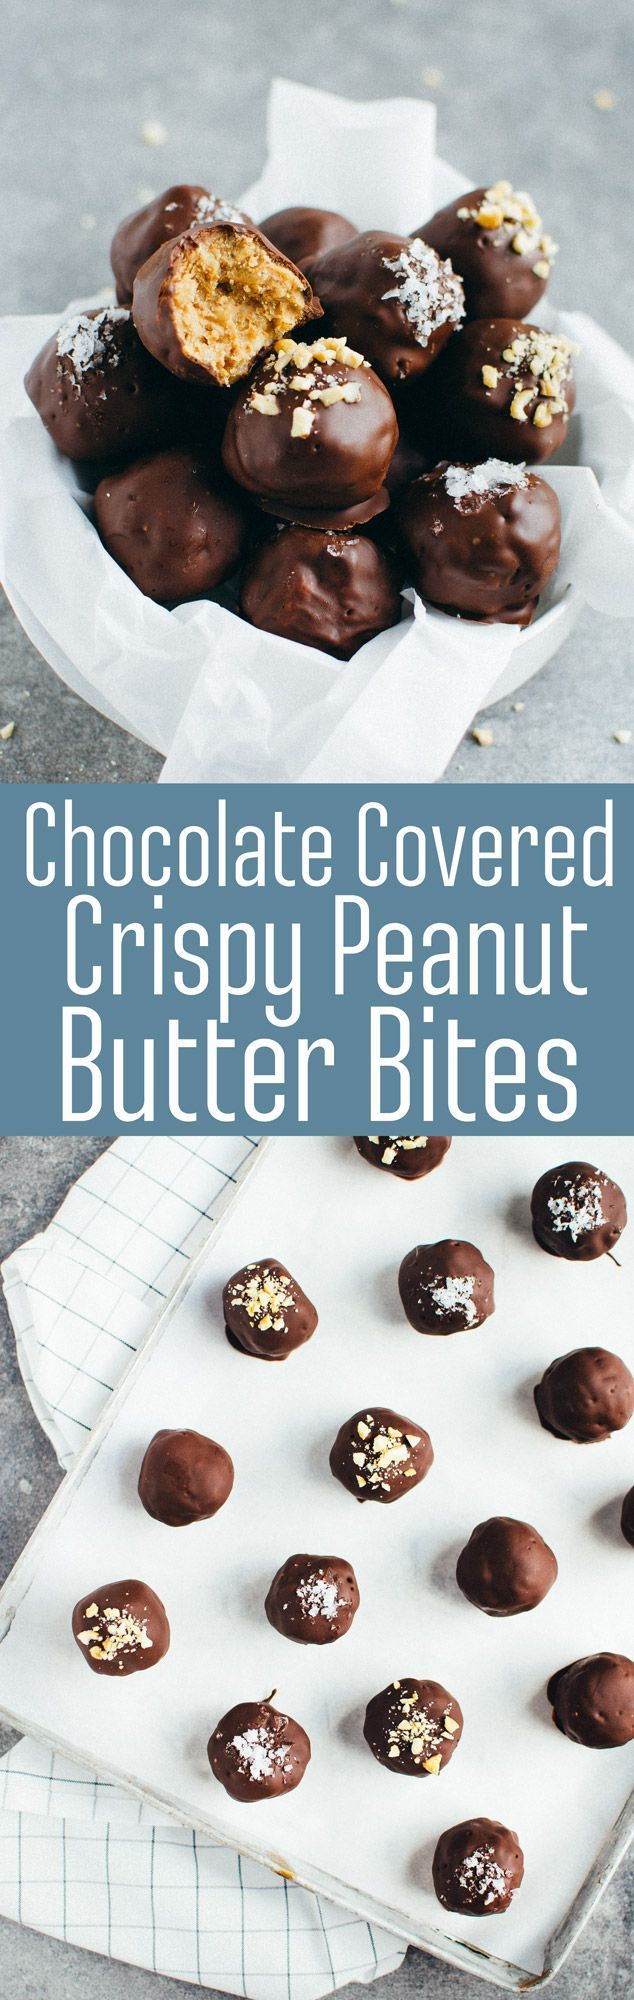 Chocolate Covered Crispy Peanut Butter Bites - Silky chocolate and naturally sweetened crispy peanut butter join together to make for a perfect sweet bite. (Vegan & GF) | RECIPE at http://NomingthruLife.com